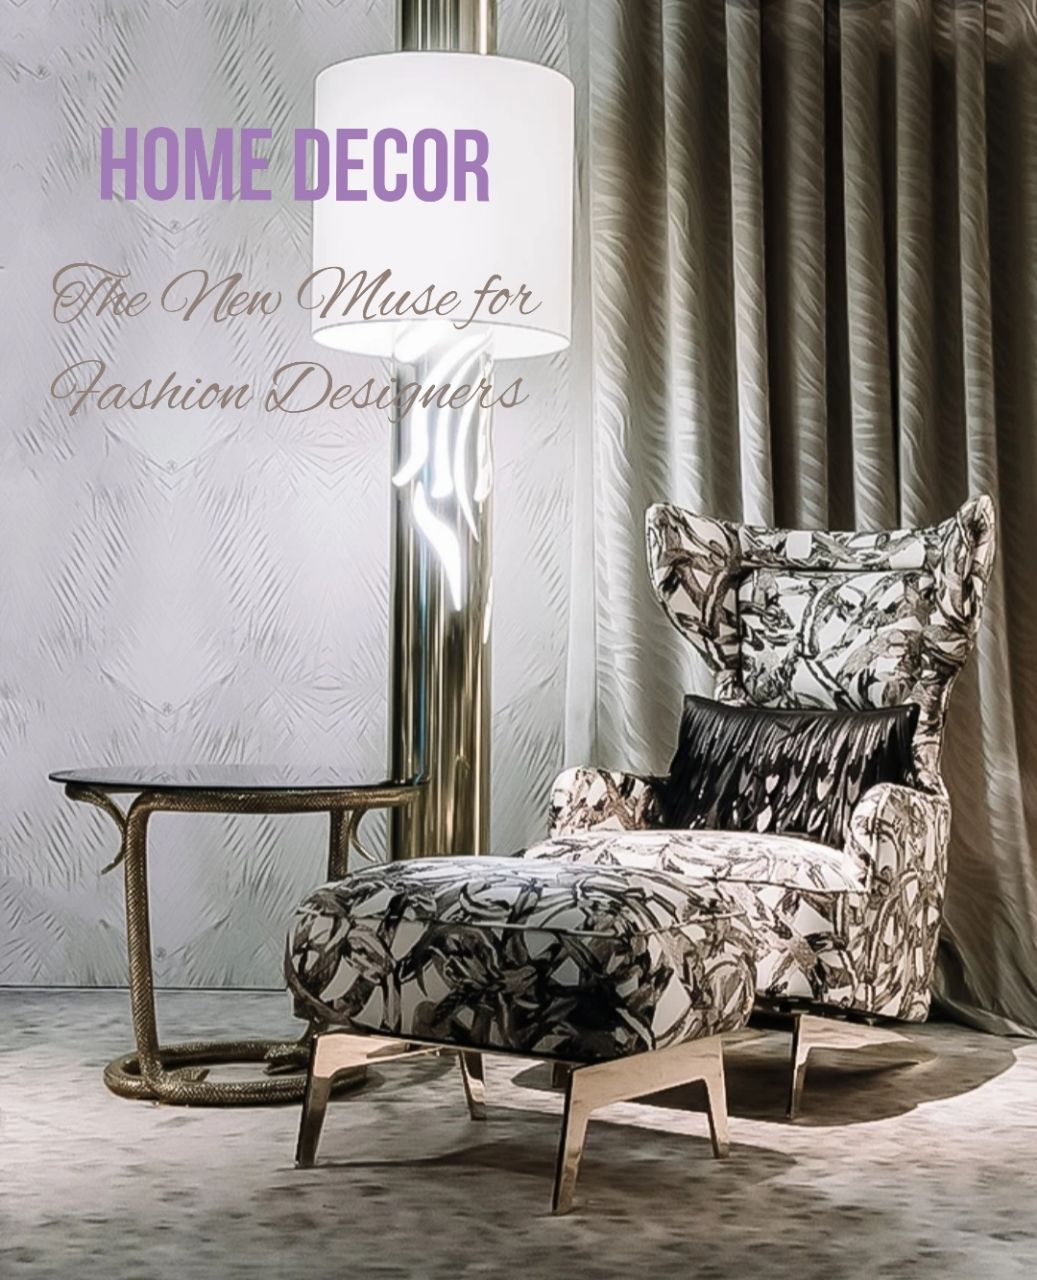 Home Décor - The new muse for Fashion designers